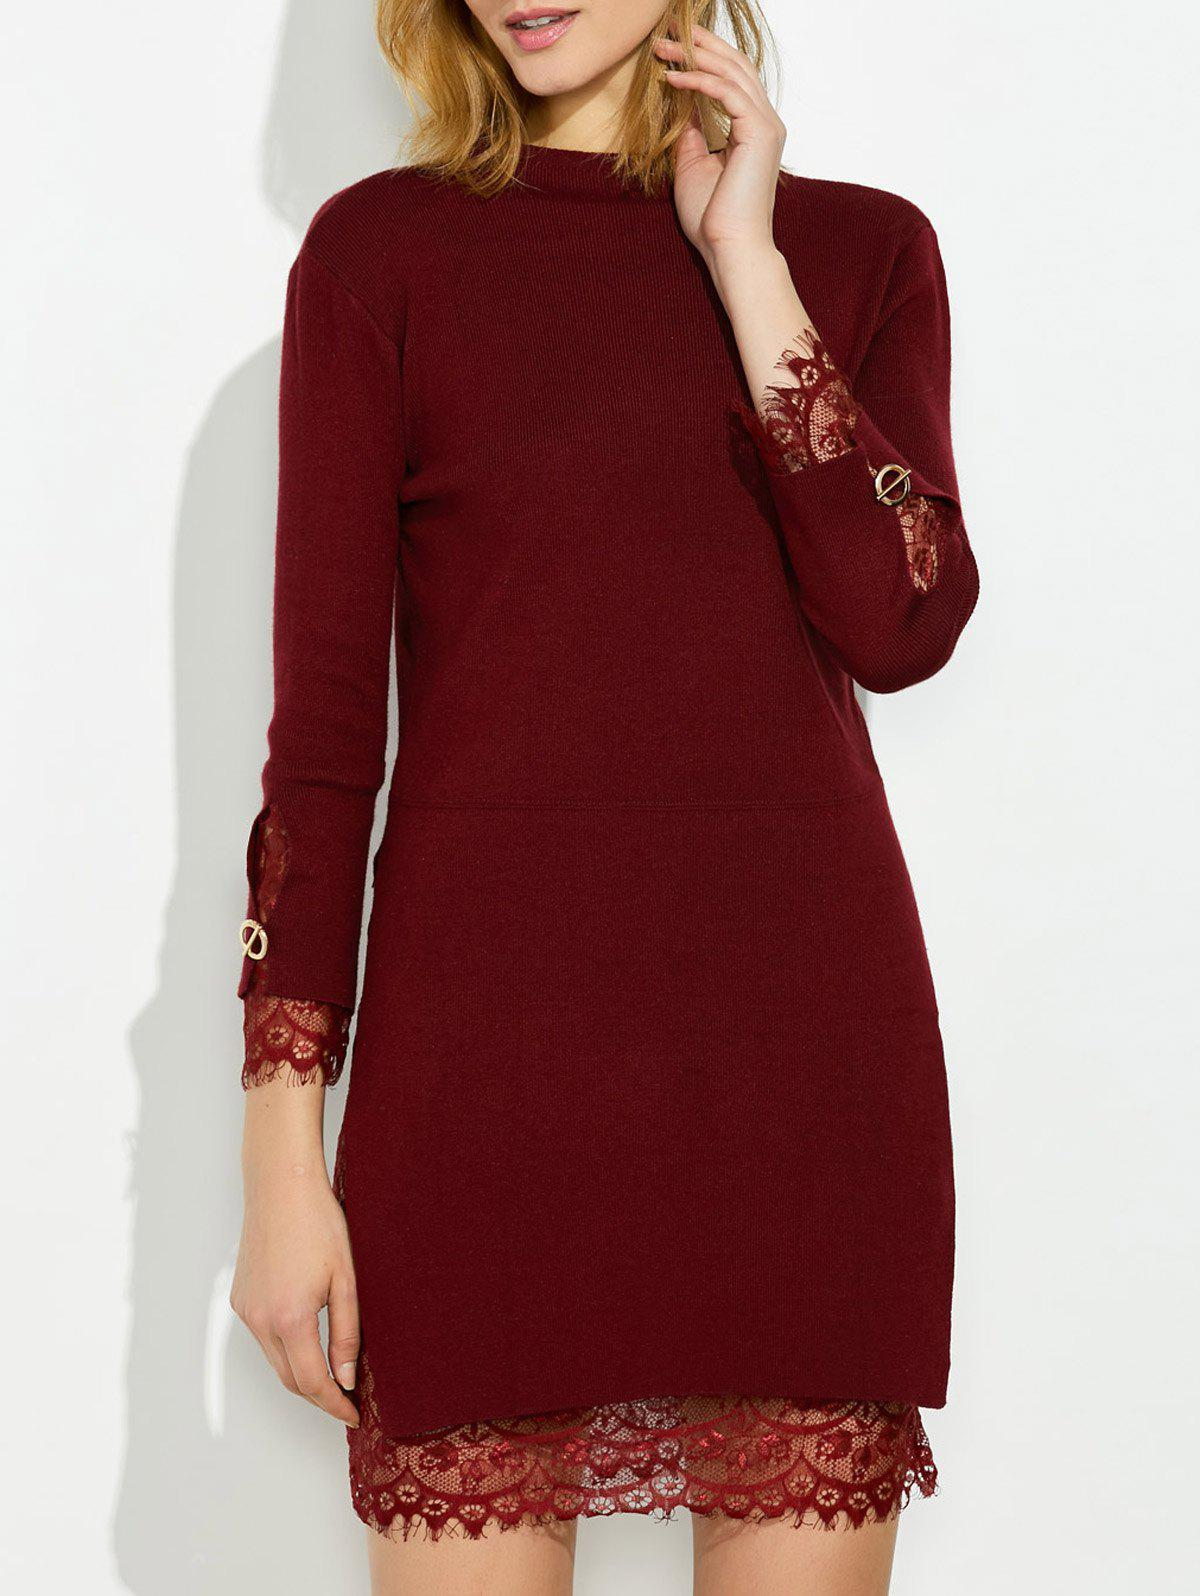 Mock Neck Knitted Layered Sweater Dress With Lace Trim plus size mock neck slit sweater dress